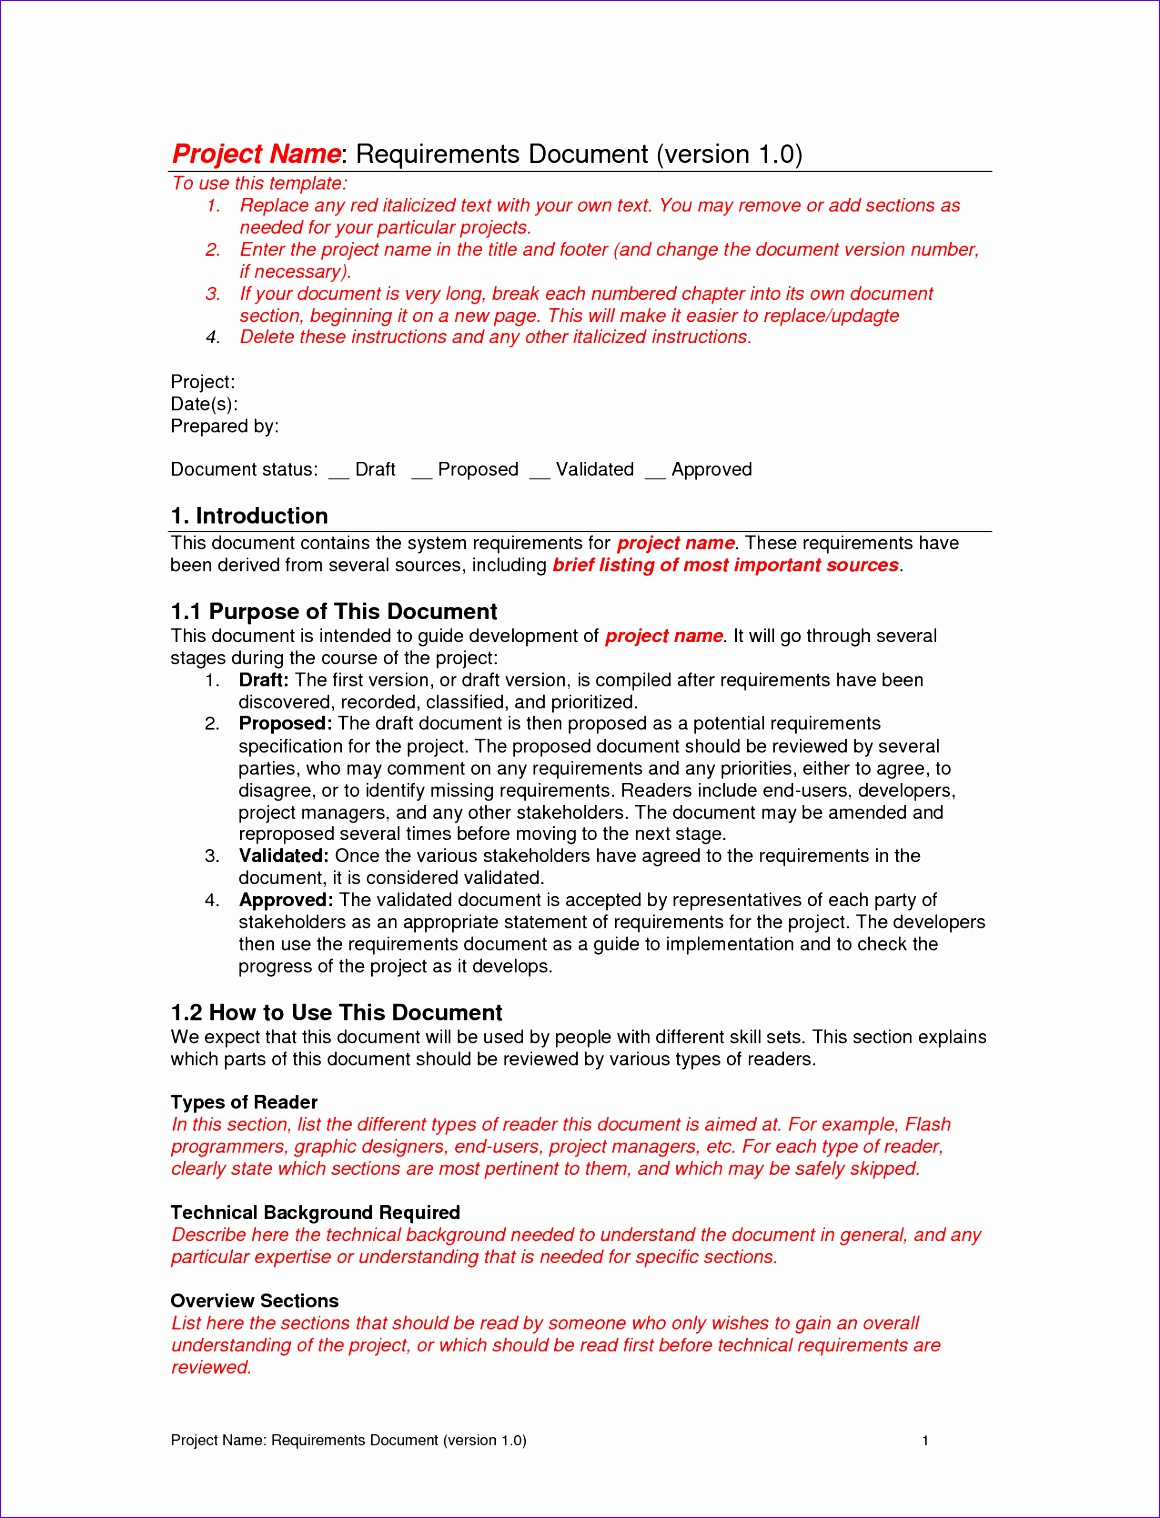 requirements document template 11601518